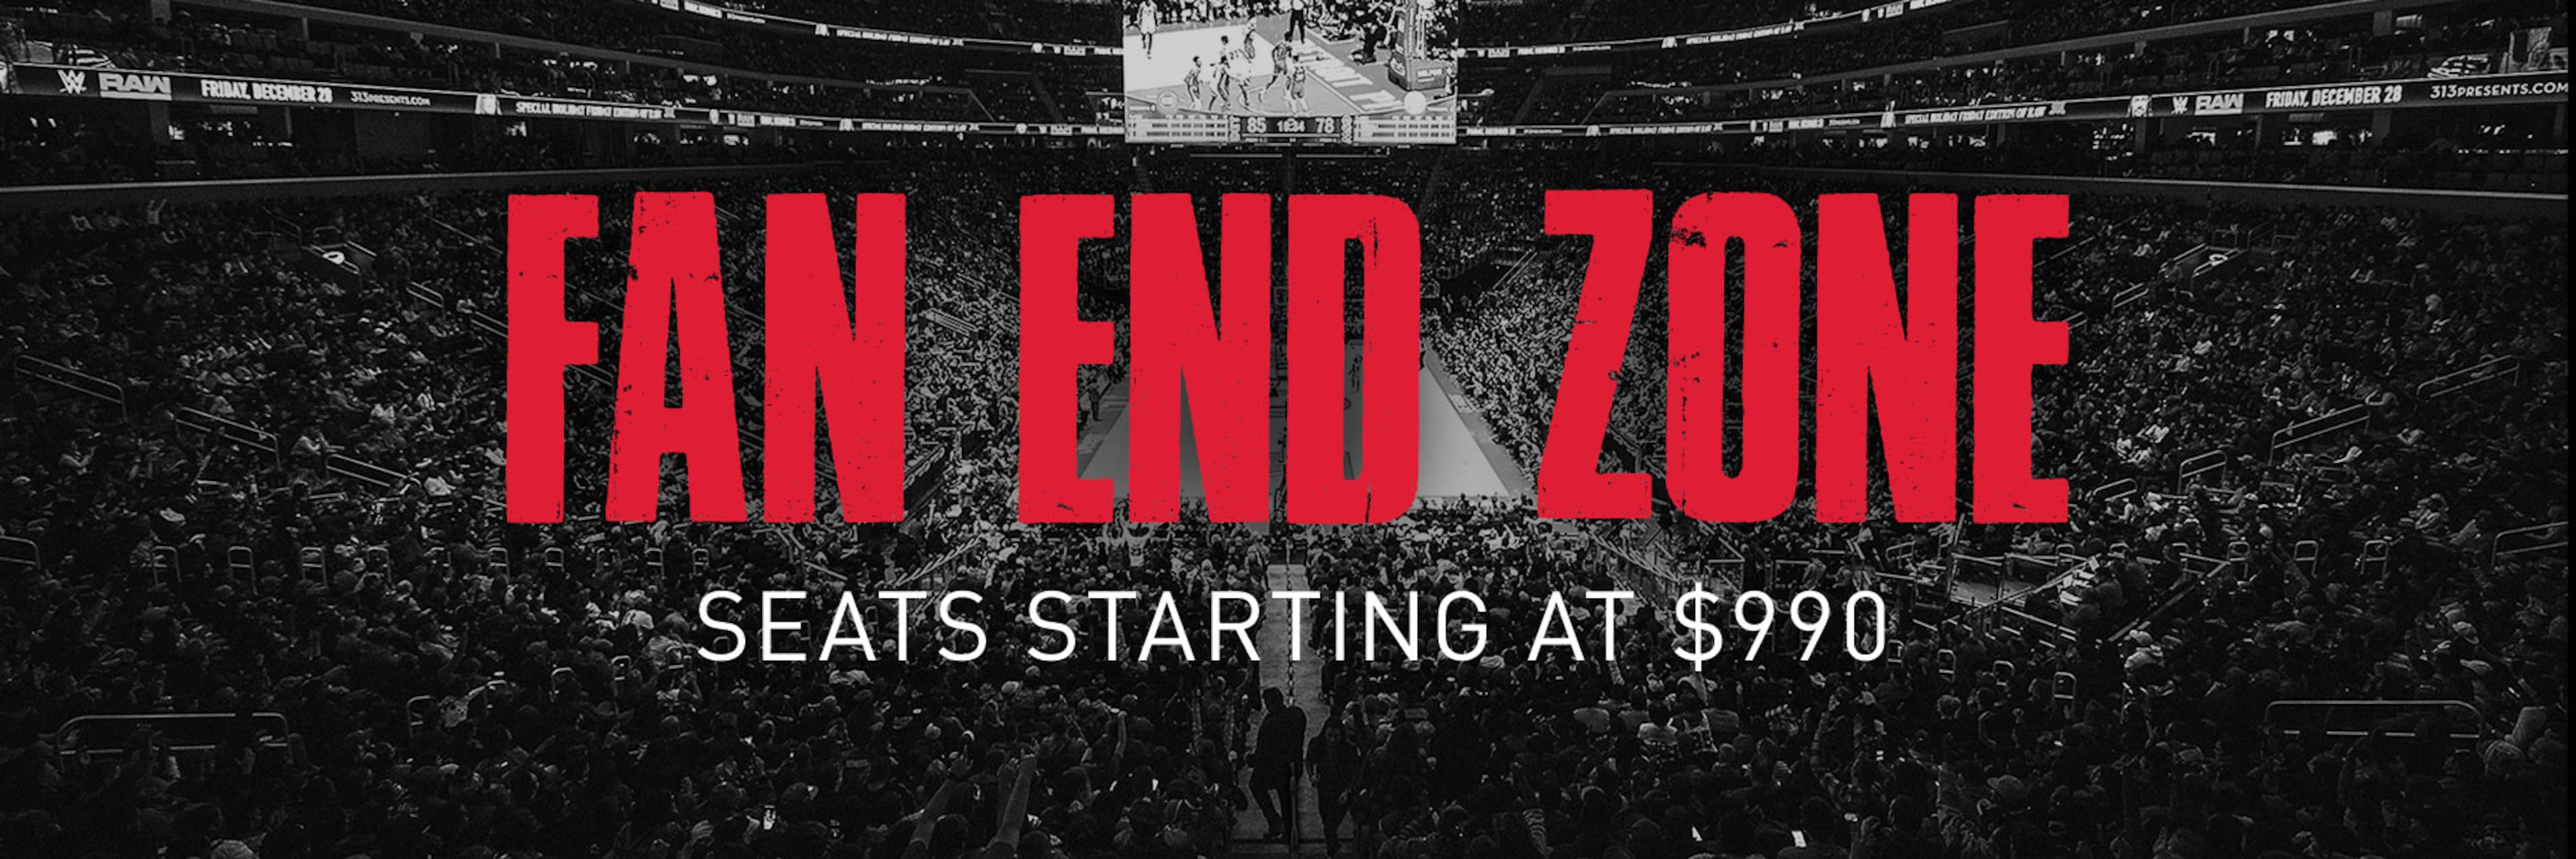 Fan End Zone - Seats starting at $990